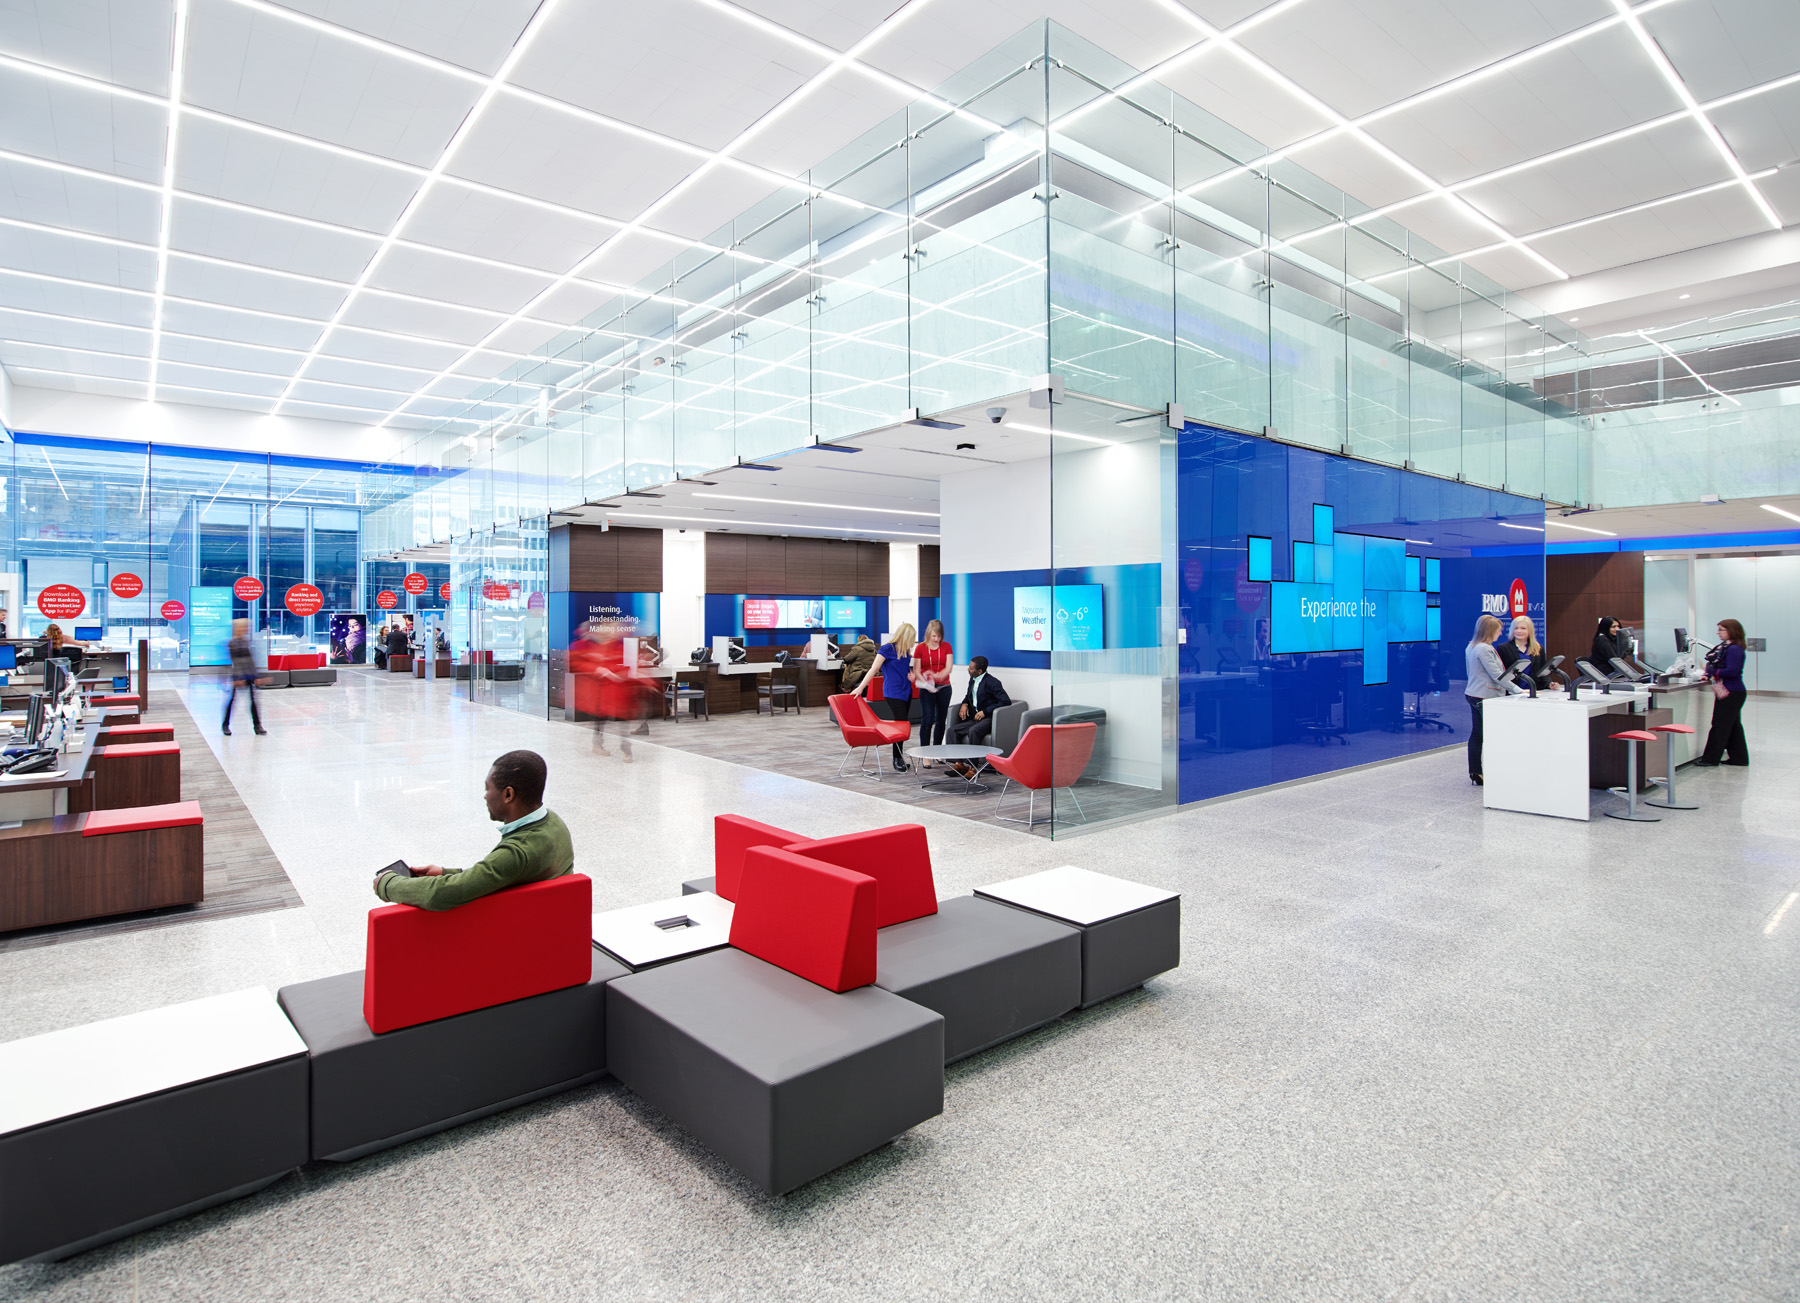 BMO interior with seating areas, work spaces, and social spaces